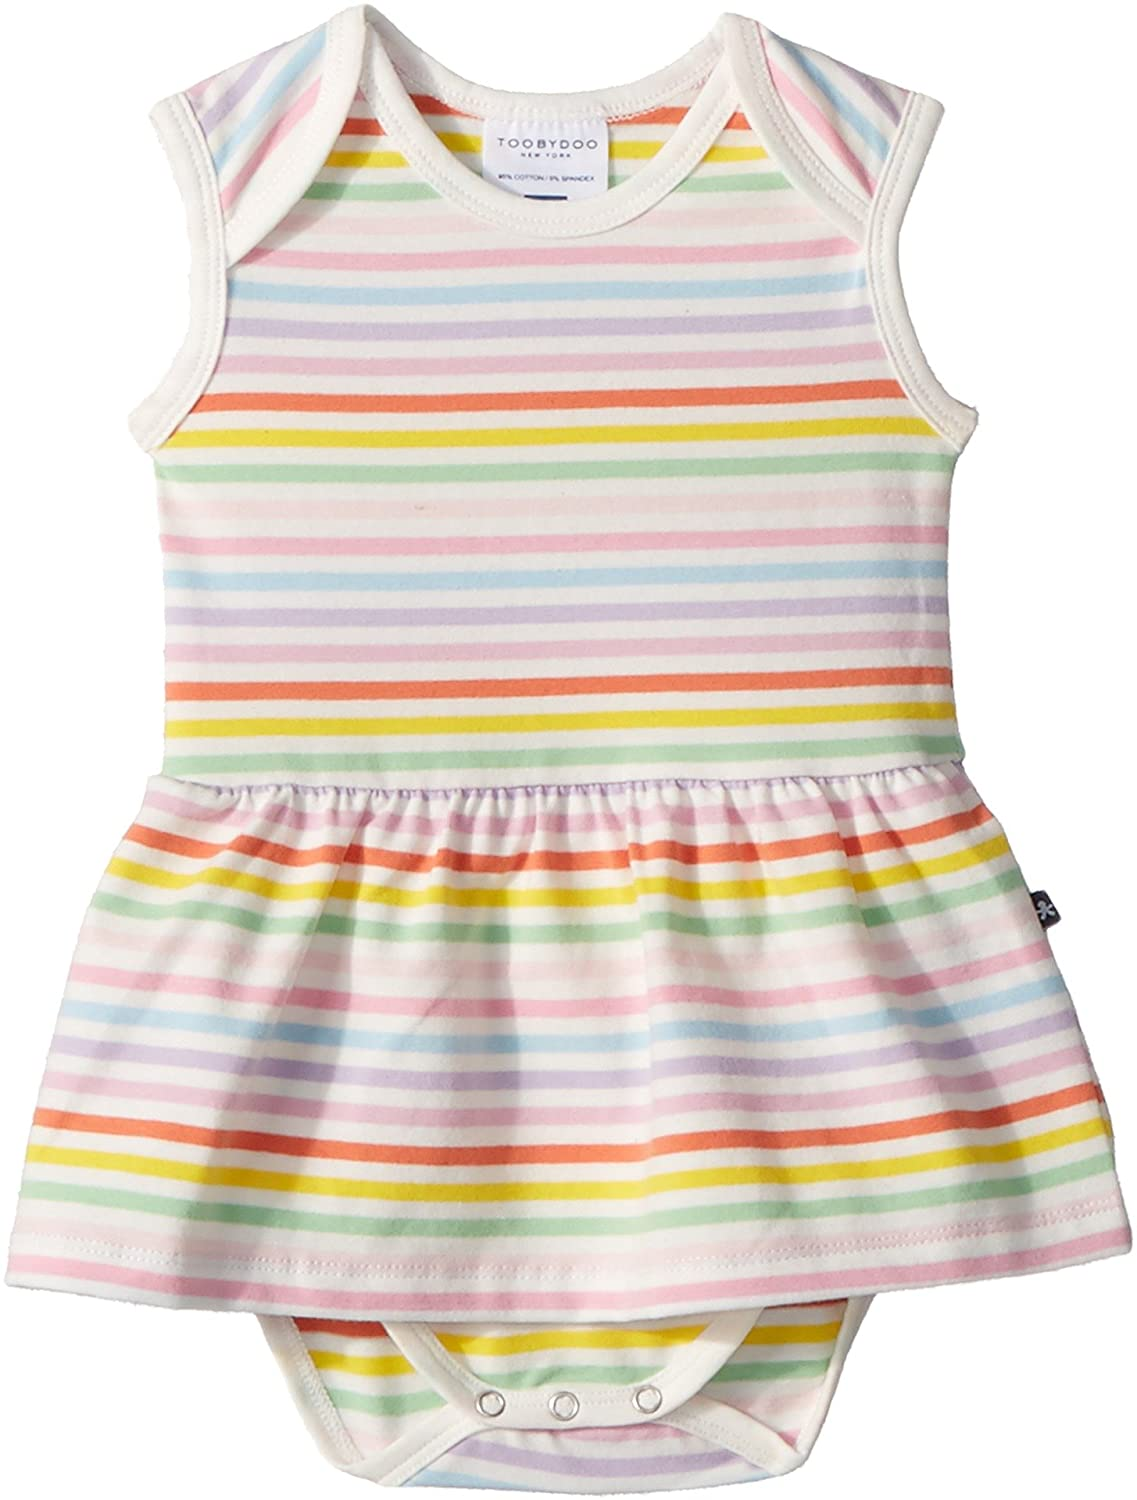 4ce0945fd88 Toobydoo Baby Girl s Rainbow Ballerina Romper (Infant) Multi 6-12 Months